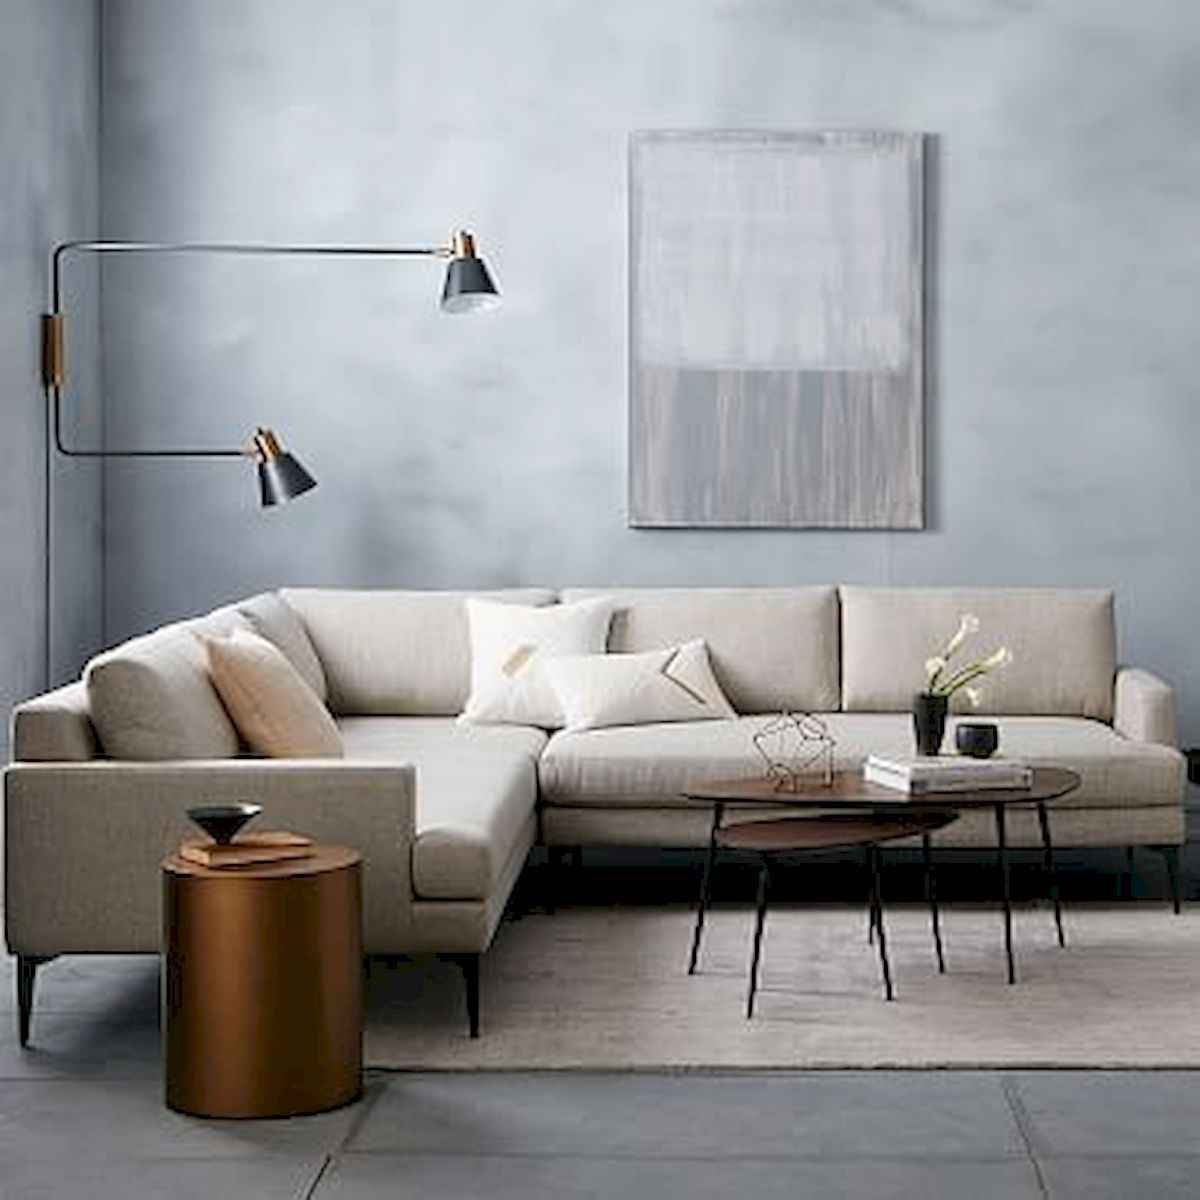 70 Stunning Grey White Black Living Room Decor Ideas And Remodel (59)